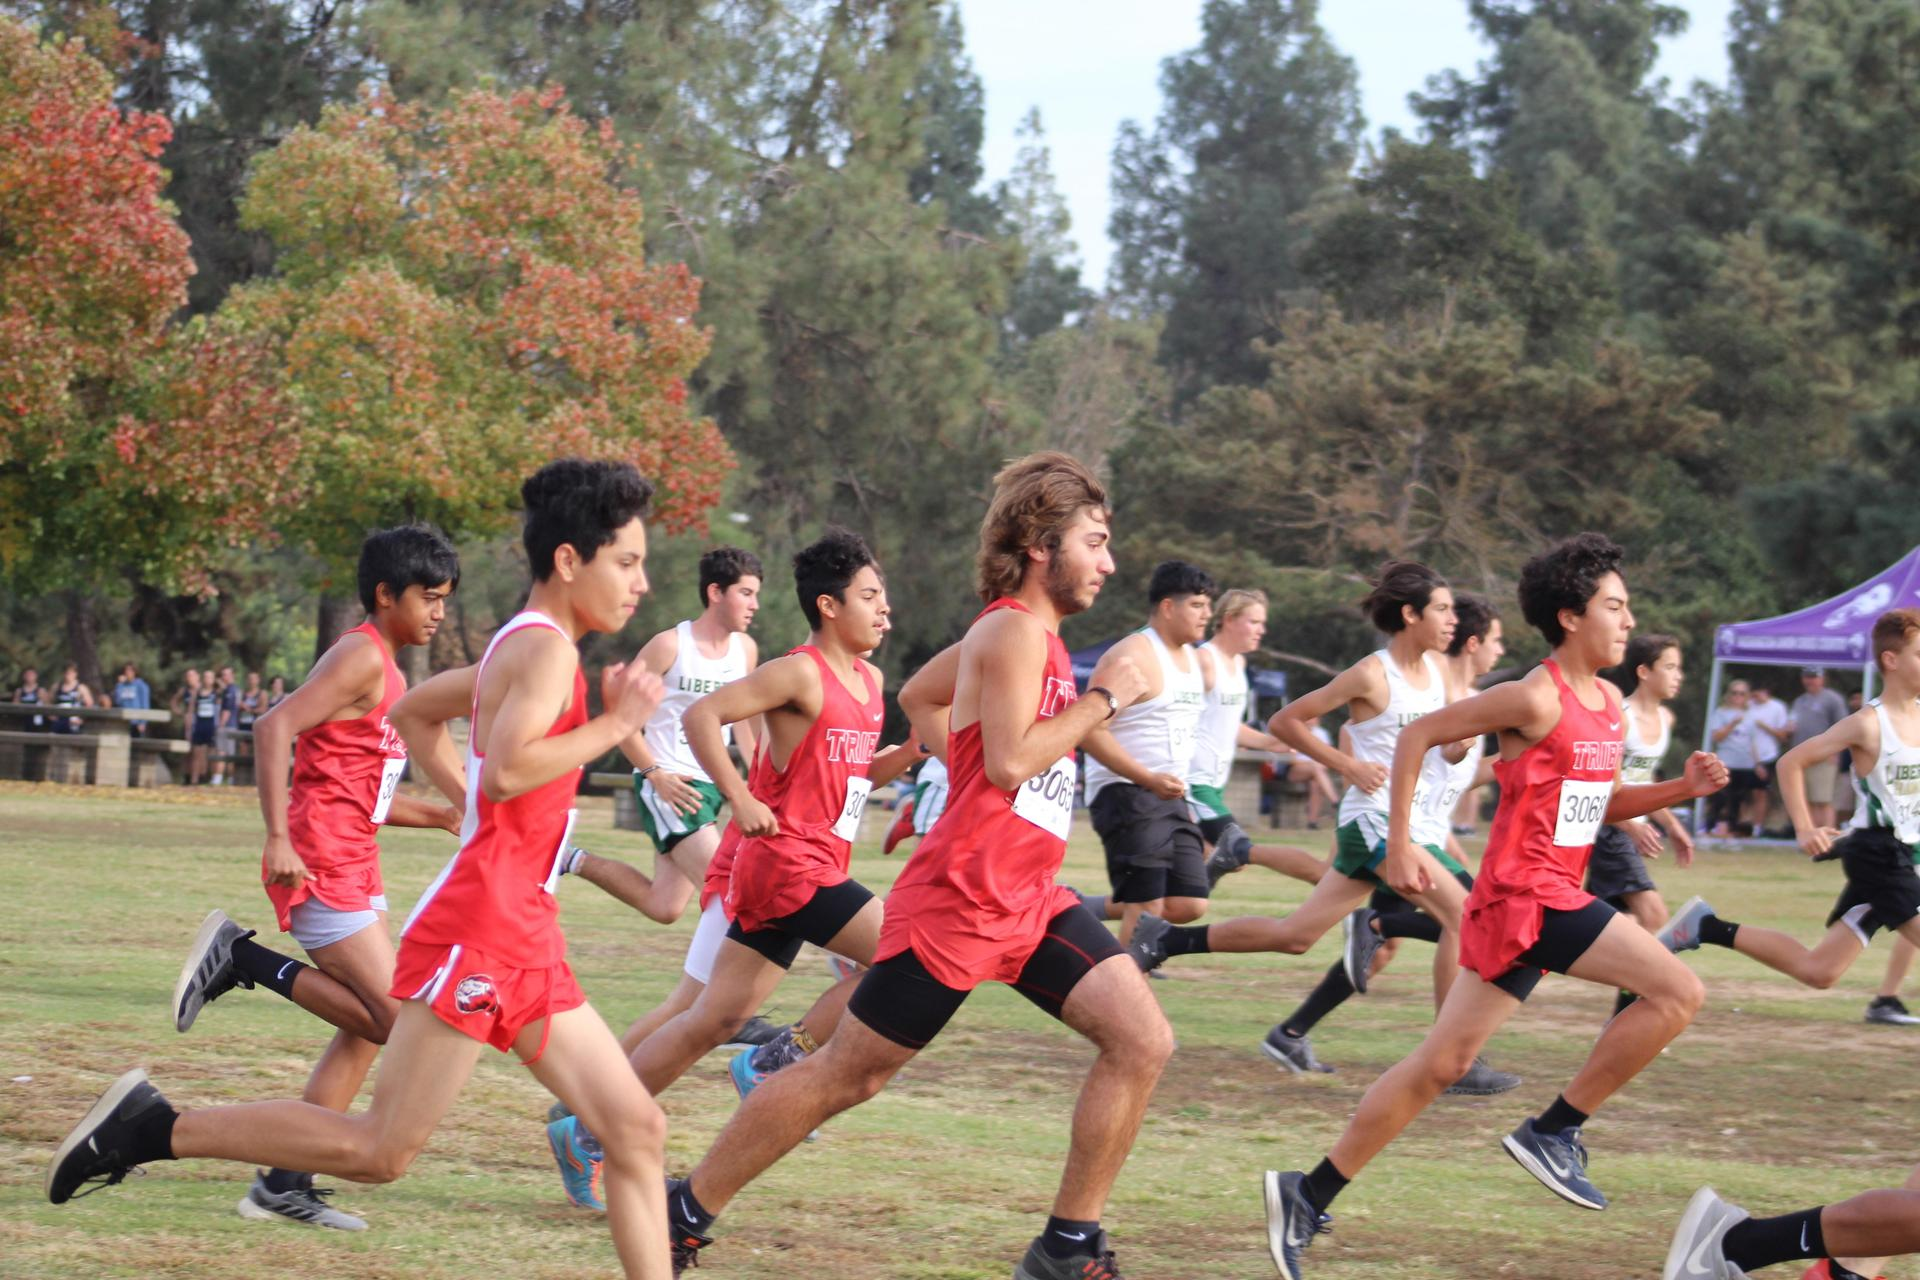 Boys beginning the race